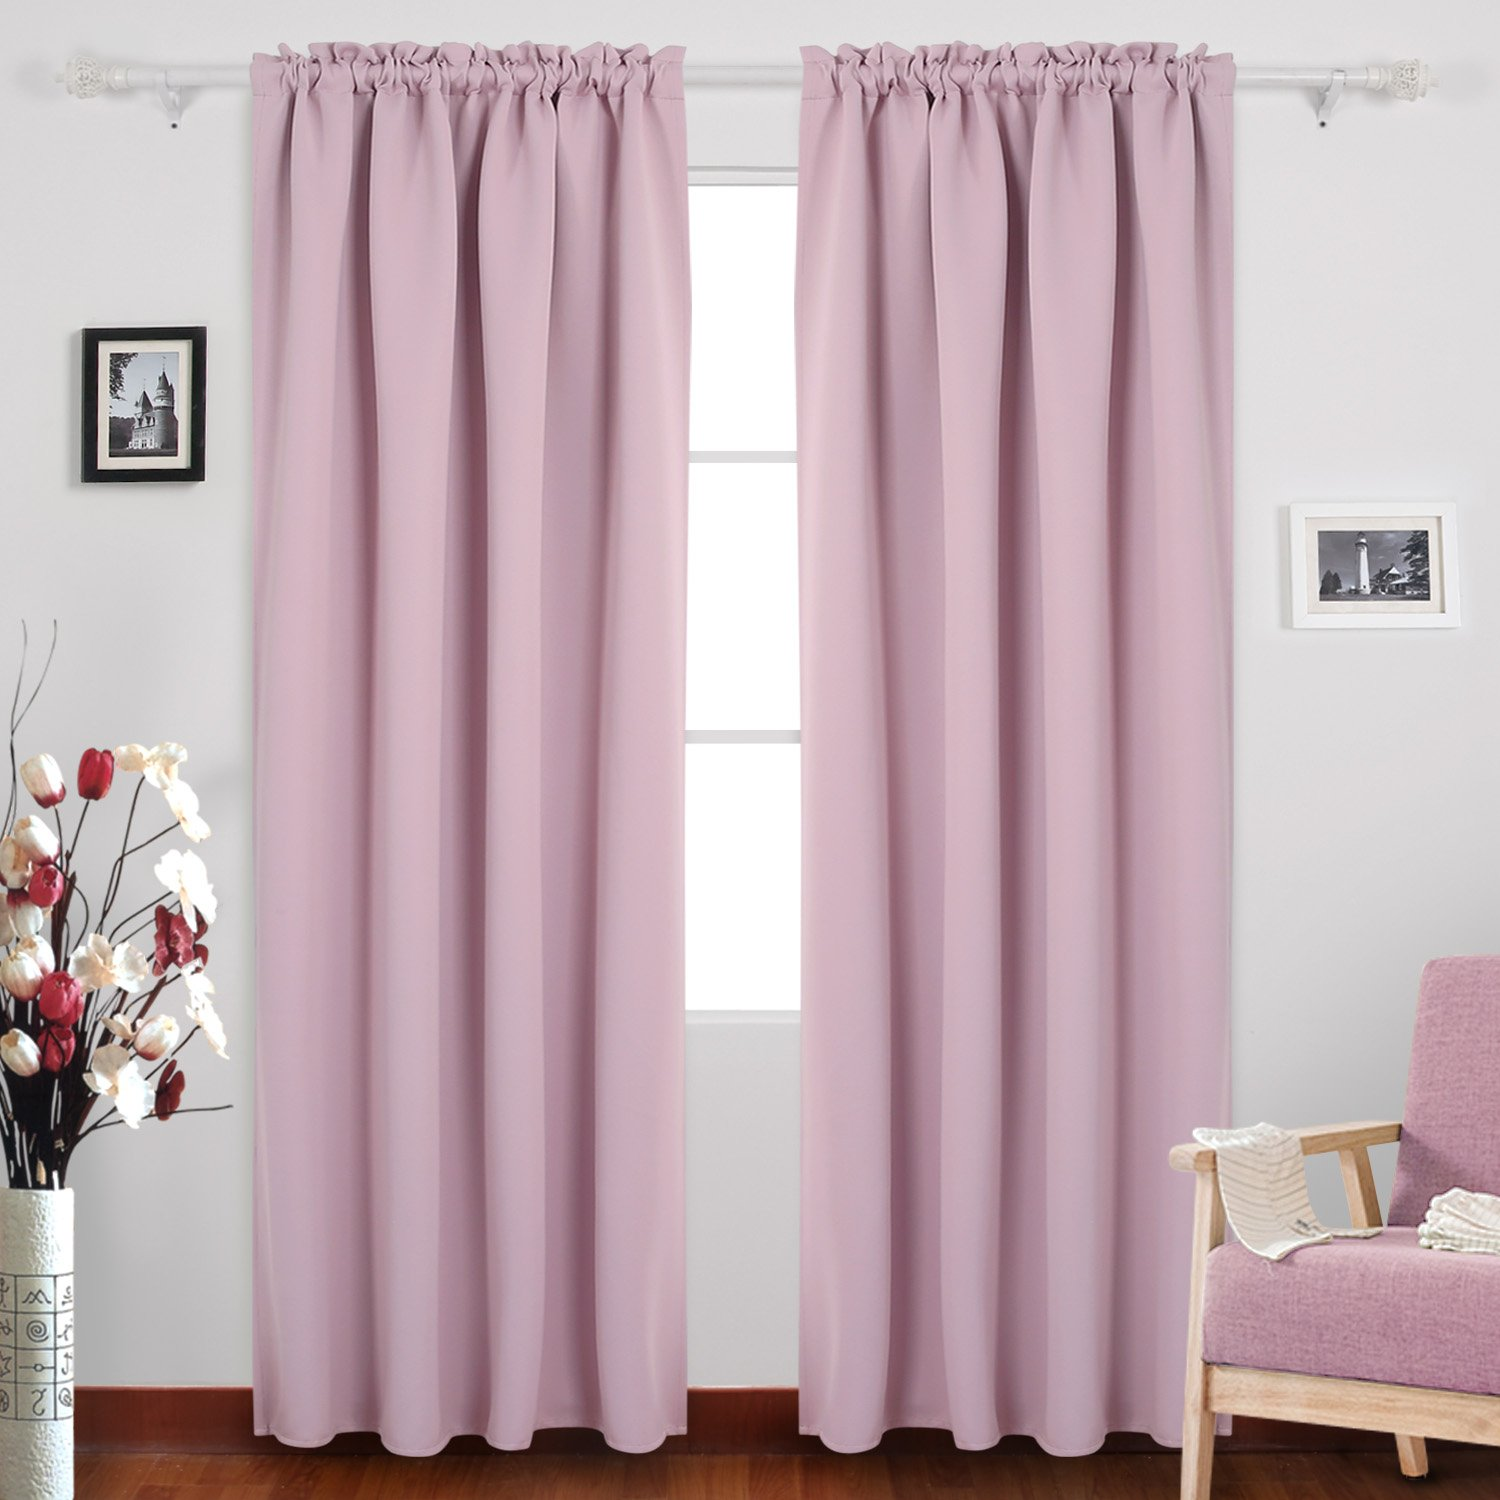 Lavender Deconovo Rod Pocket Blackout Curtains Thermal Insulated Curtains for Kids Room